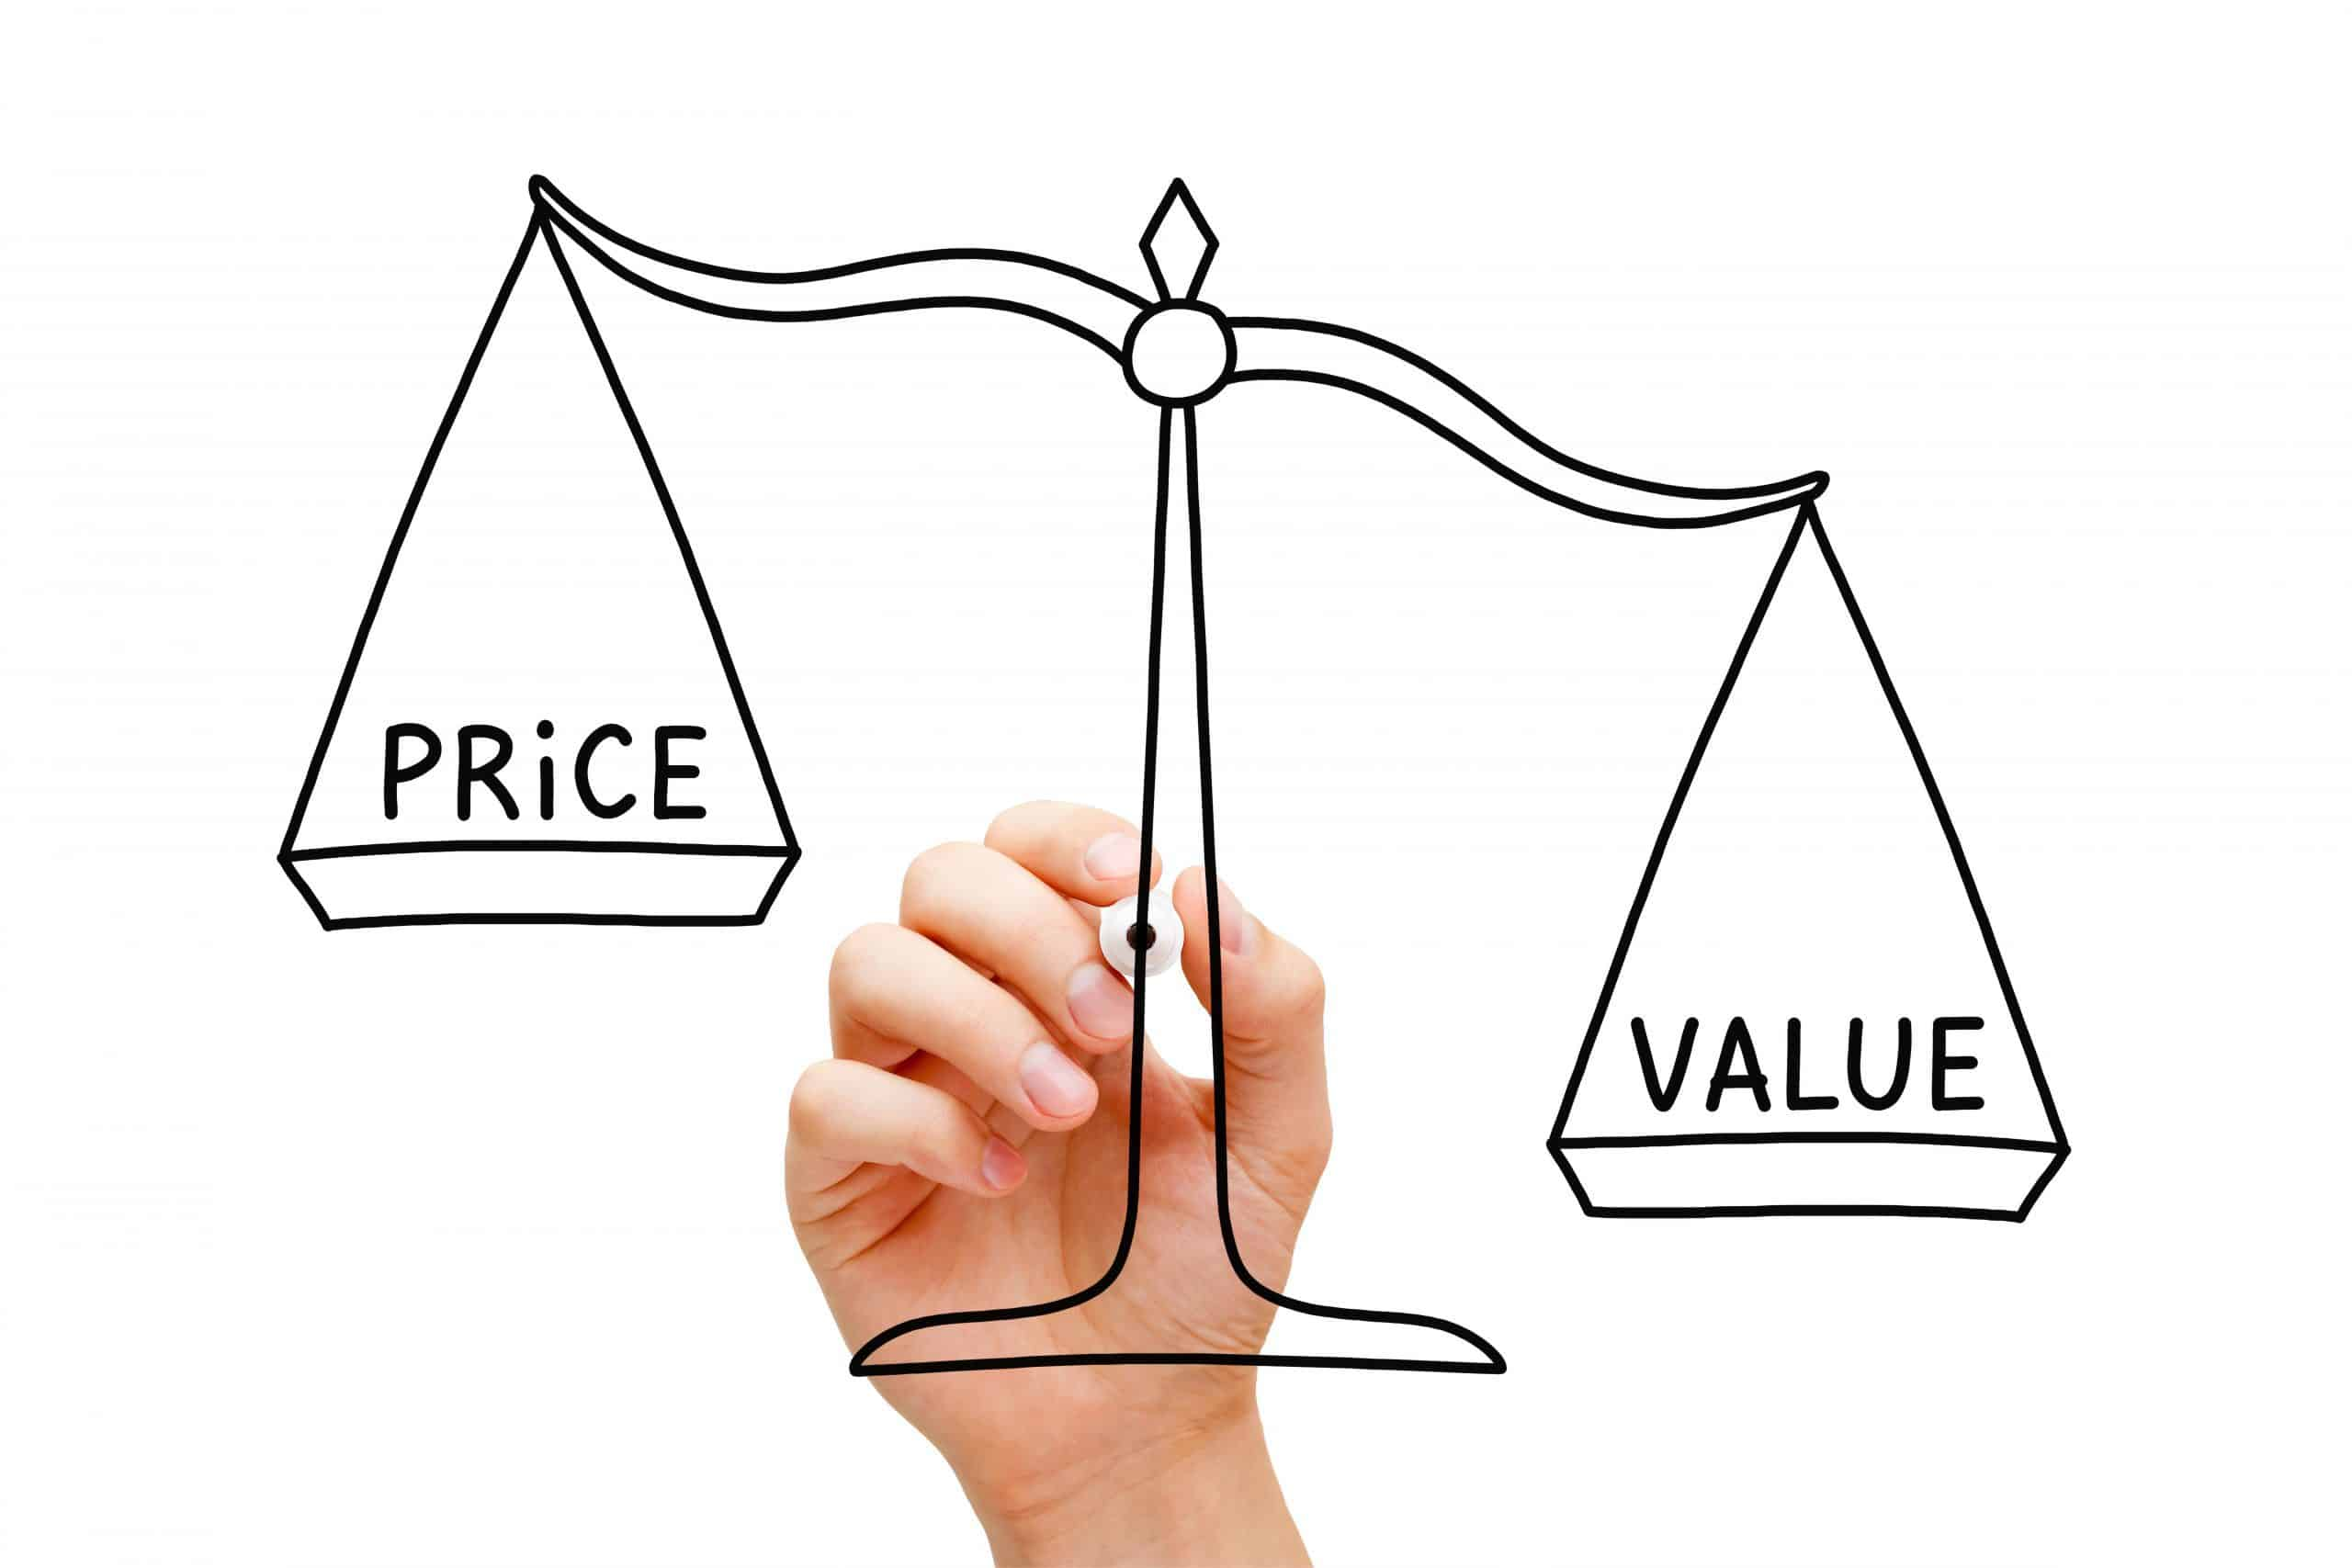 Price Your Packages To Offer Value